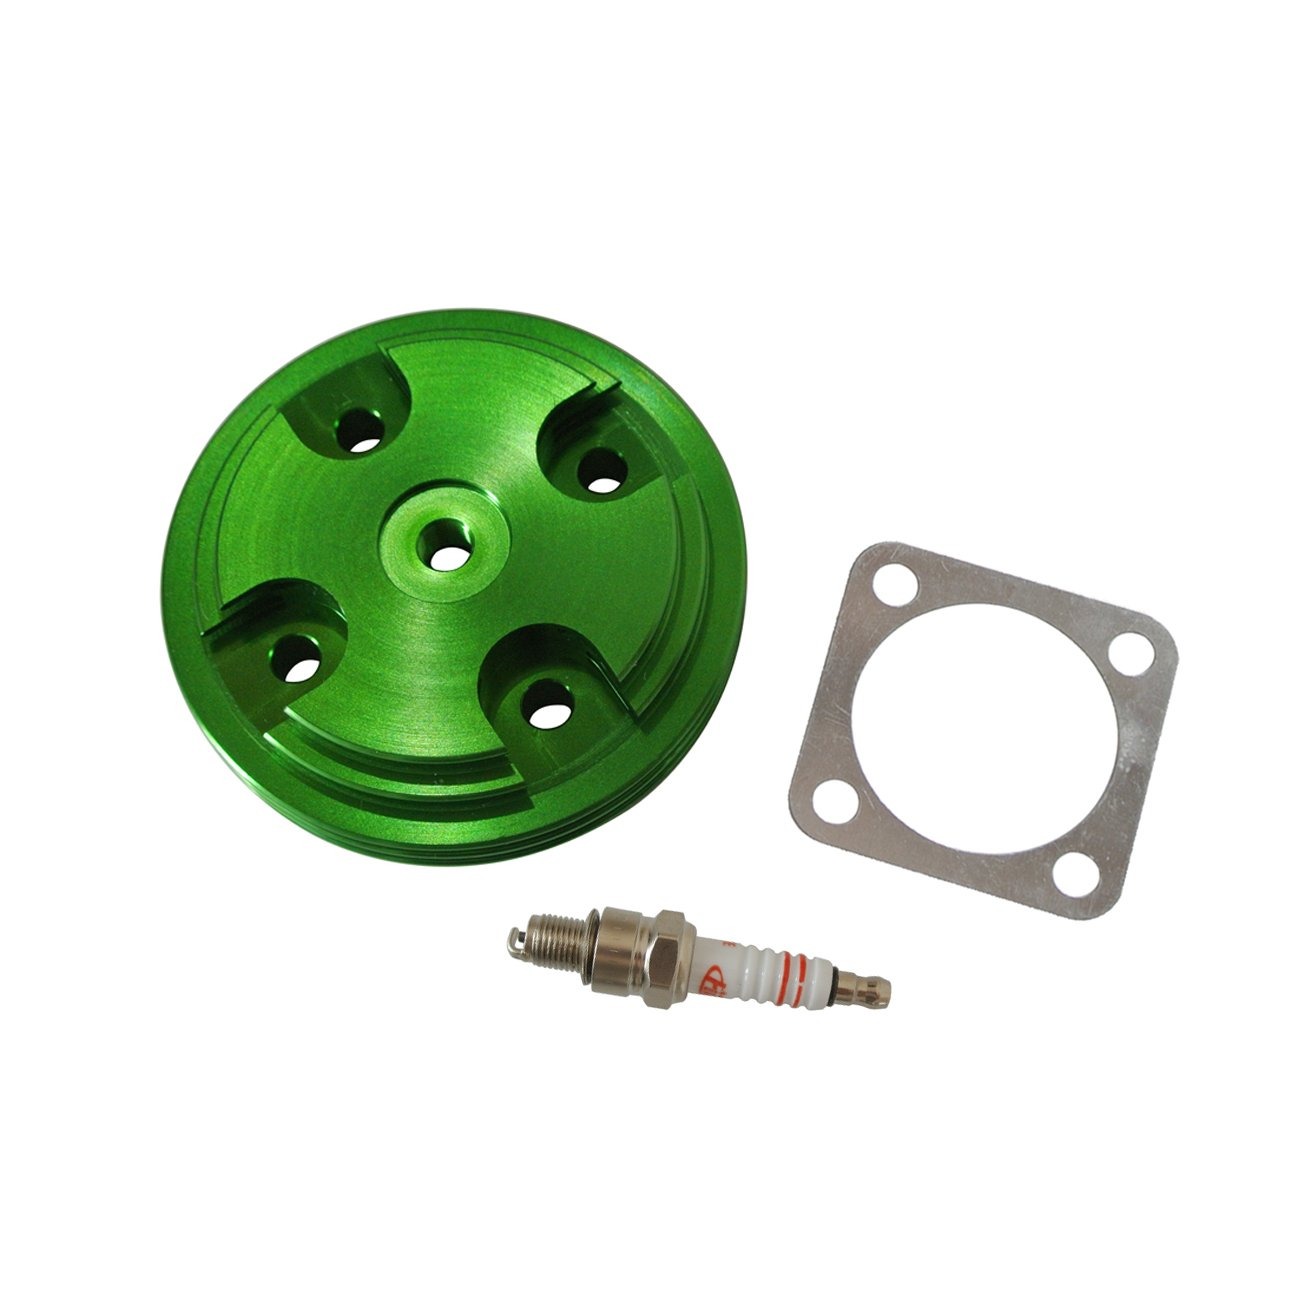 Stroke Engine Motorized Bicycle Cylinder Head Cover With Gasket Fits 66 80cc 2